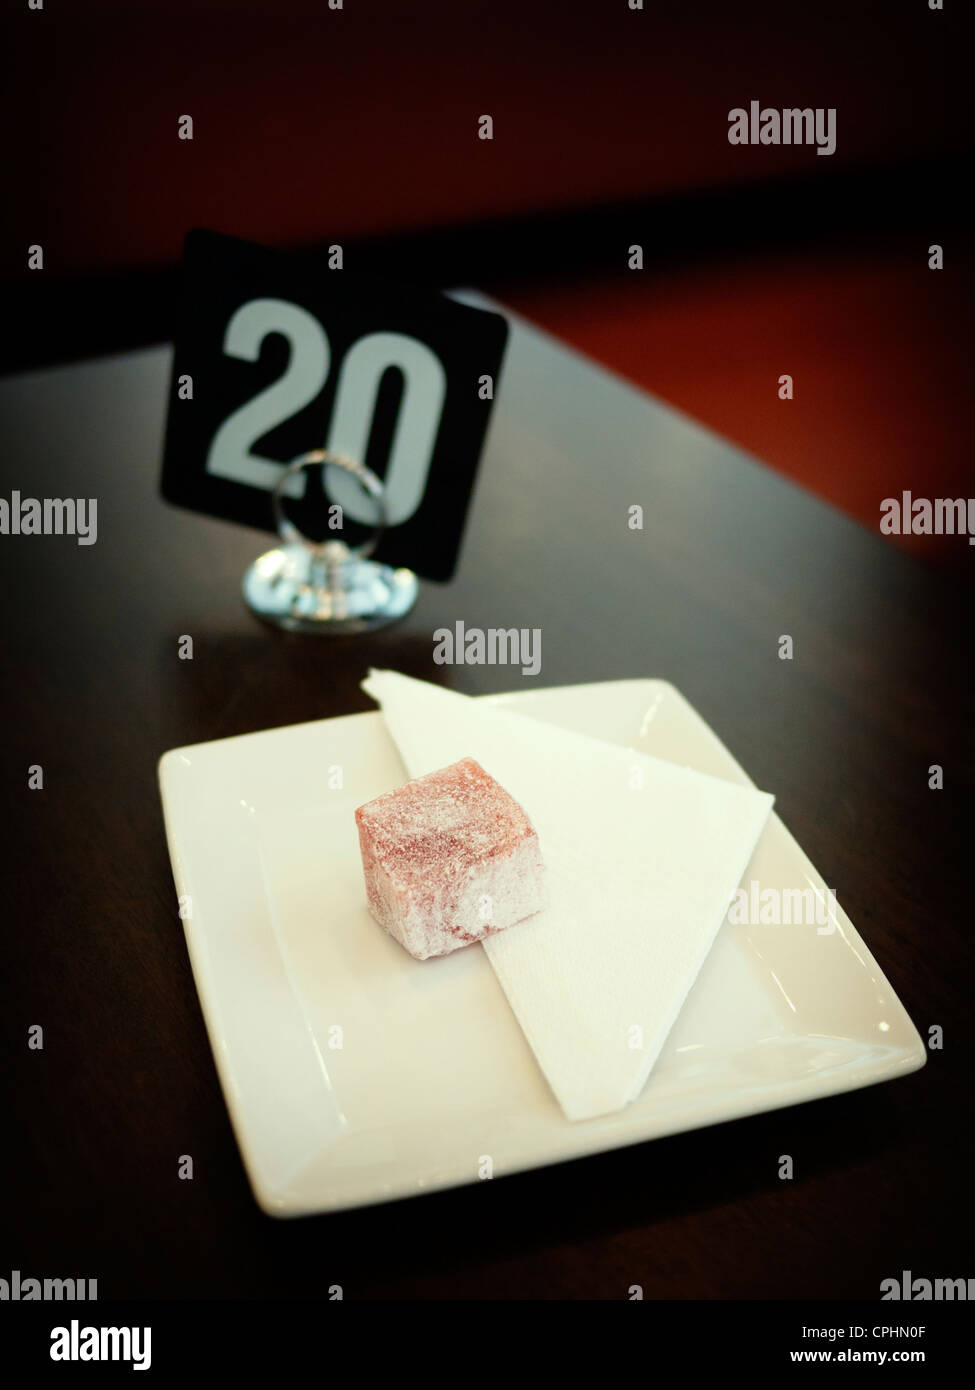 Lump of Turkish delight on plate in cafe. - Stock Image